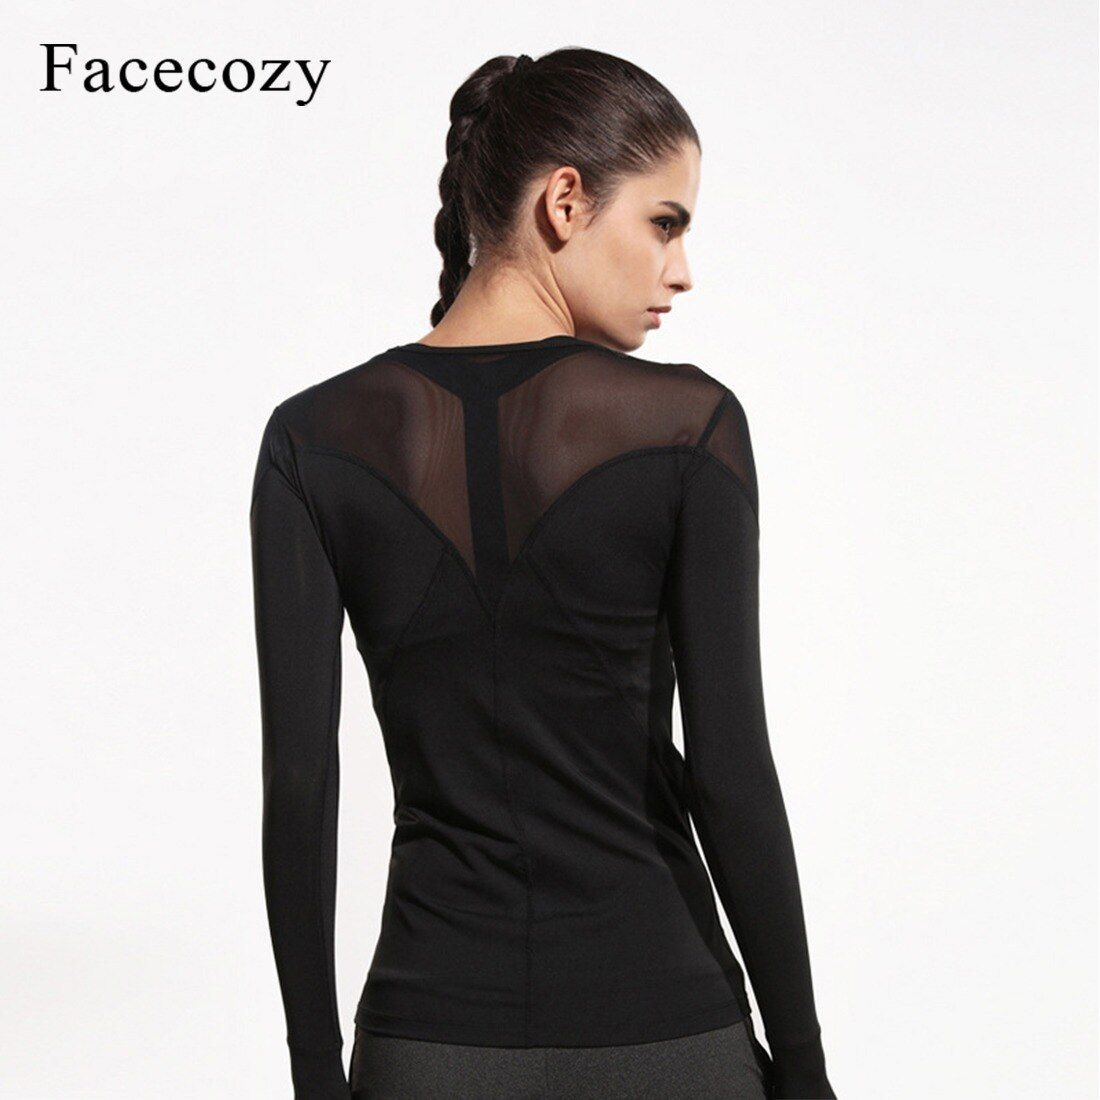 Facecozy Women Fitness Yoga Compression Shirt Female Tops Sport Running Top Women Yoga Shirts Long S...